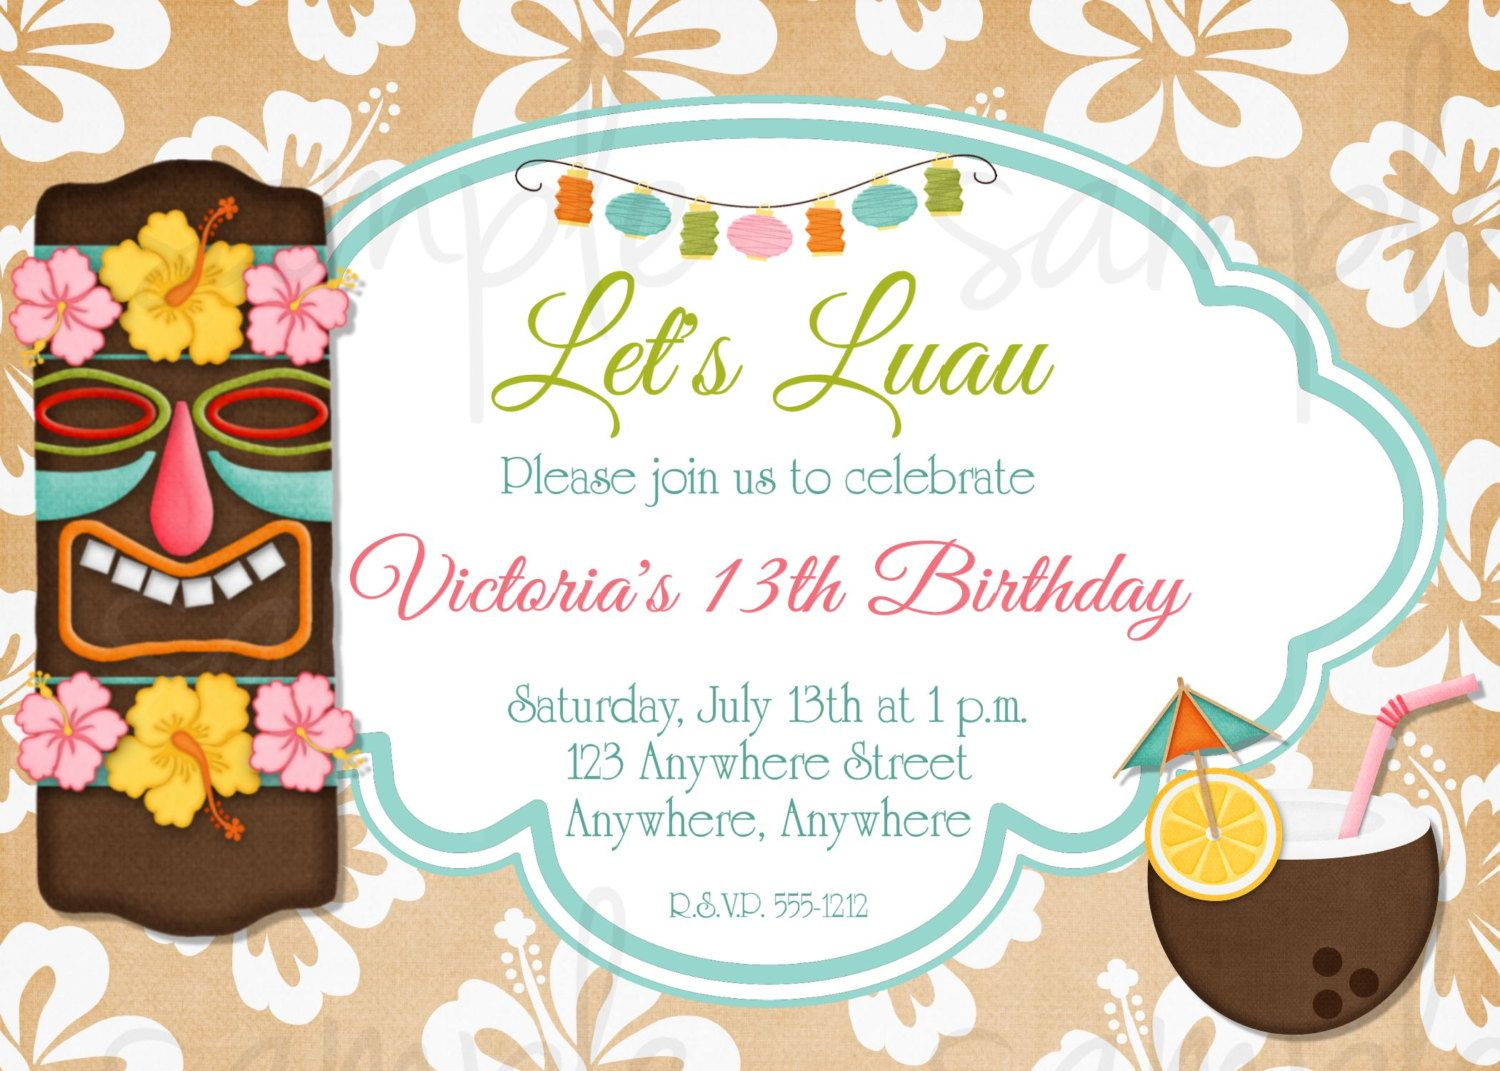 Baby Luau Birthday Invitations New Invitations – Tropical Birthday Invitations